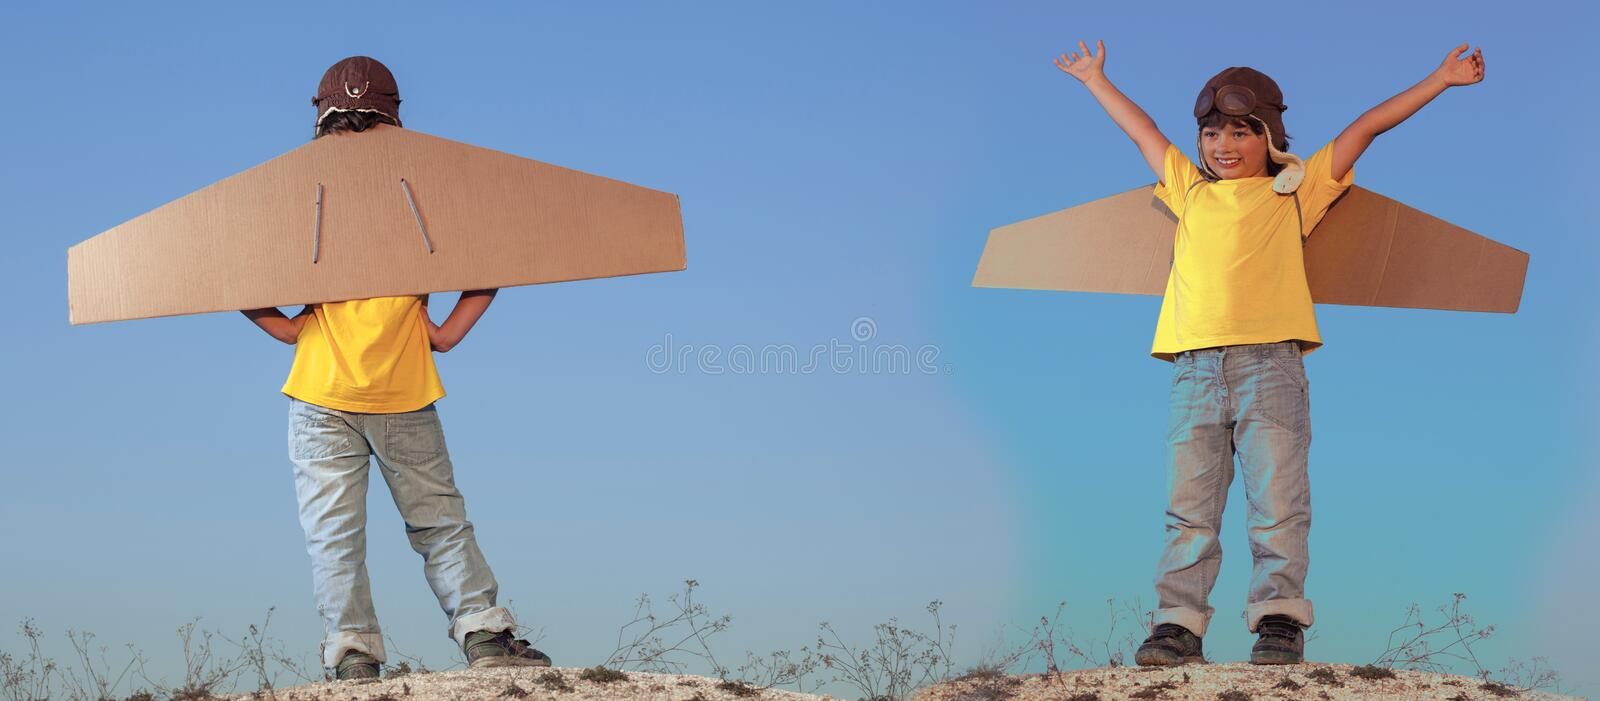 Happy boys with cardboard boxes of wings against sky dream of flying stock photos